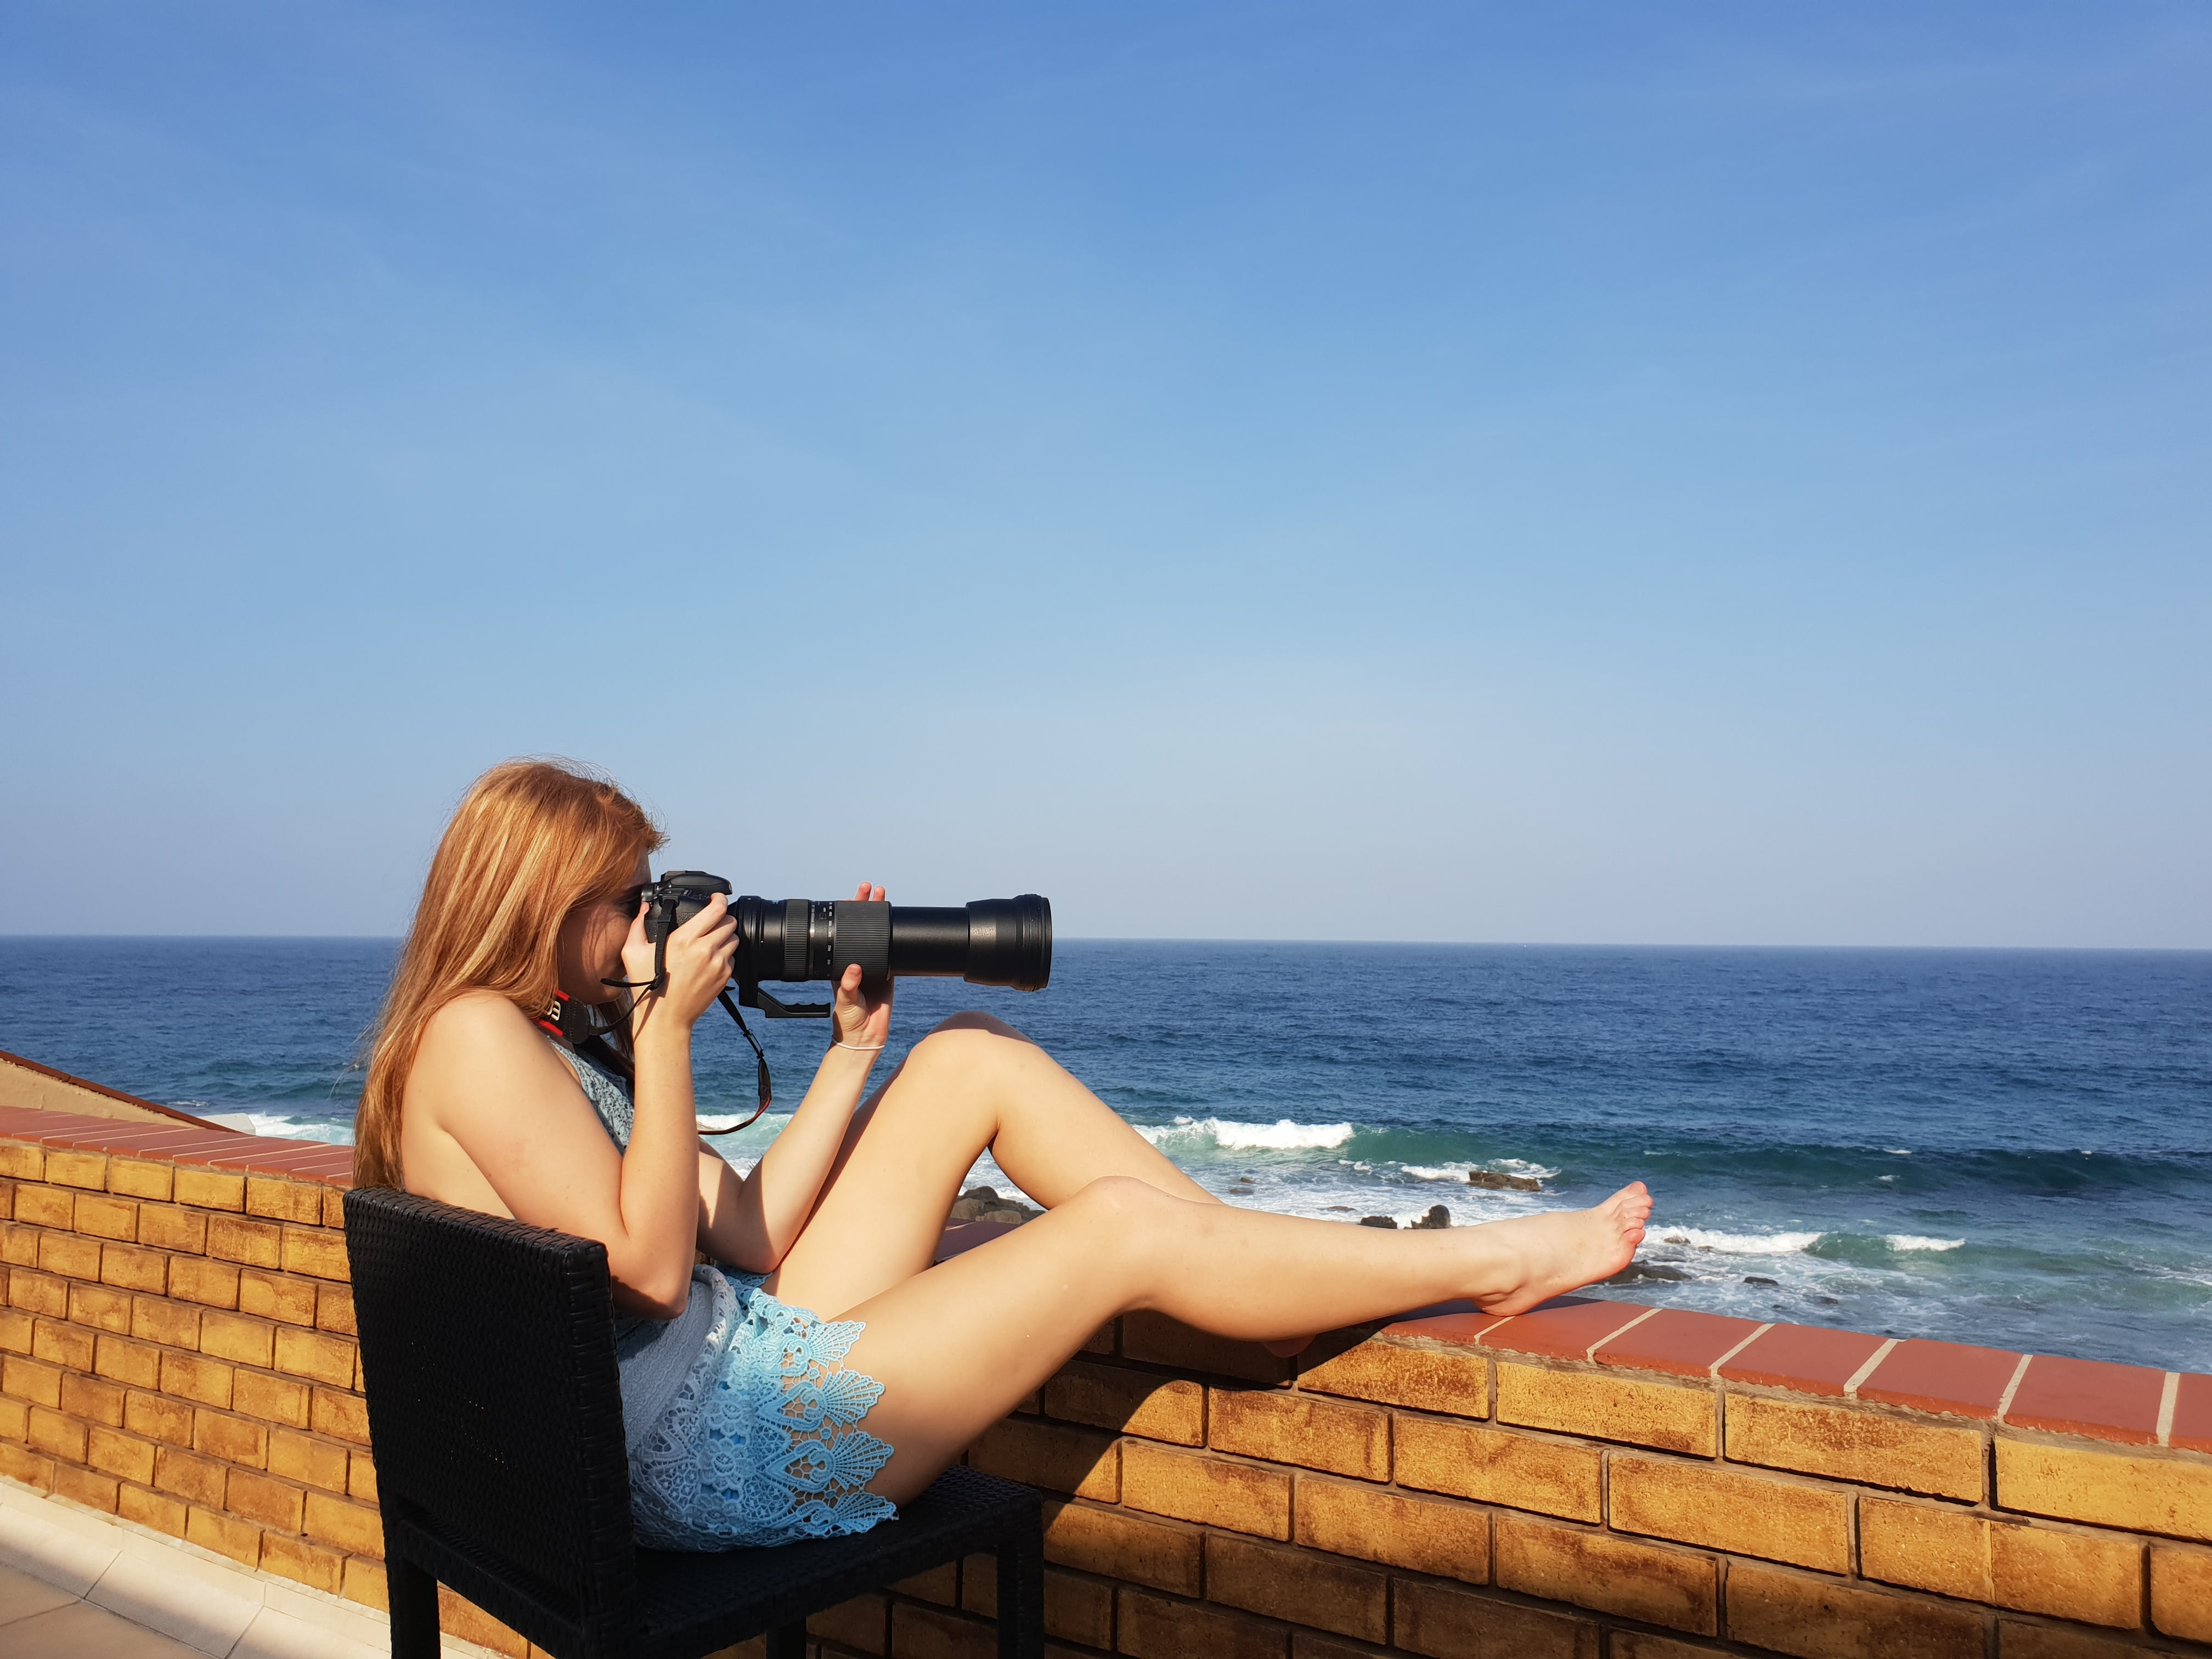 Woman Sitting Holding Dslr Camera